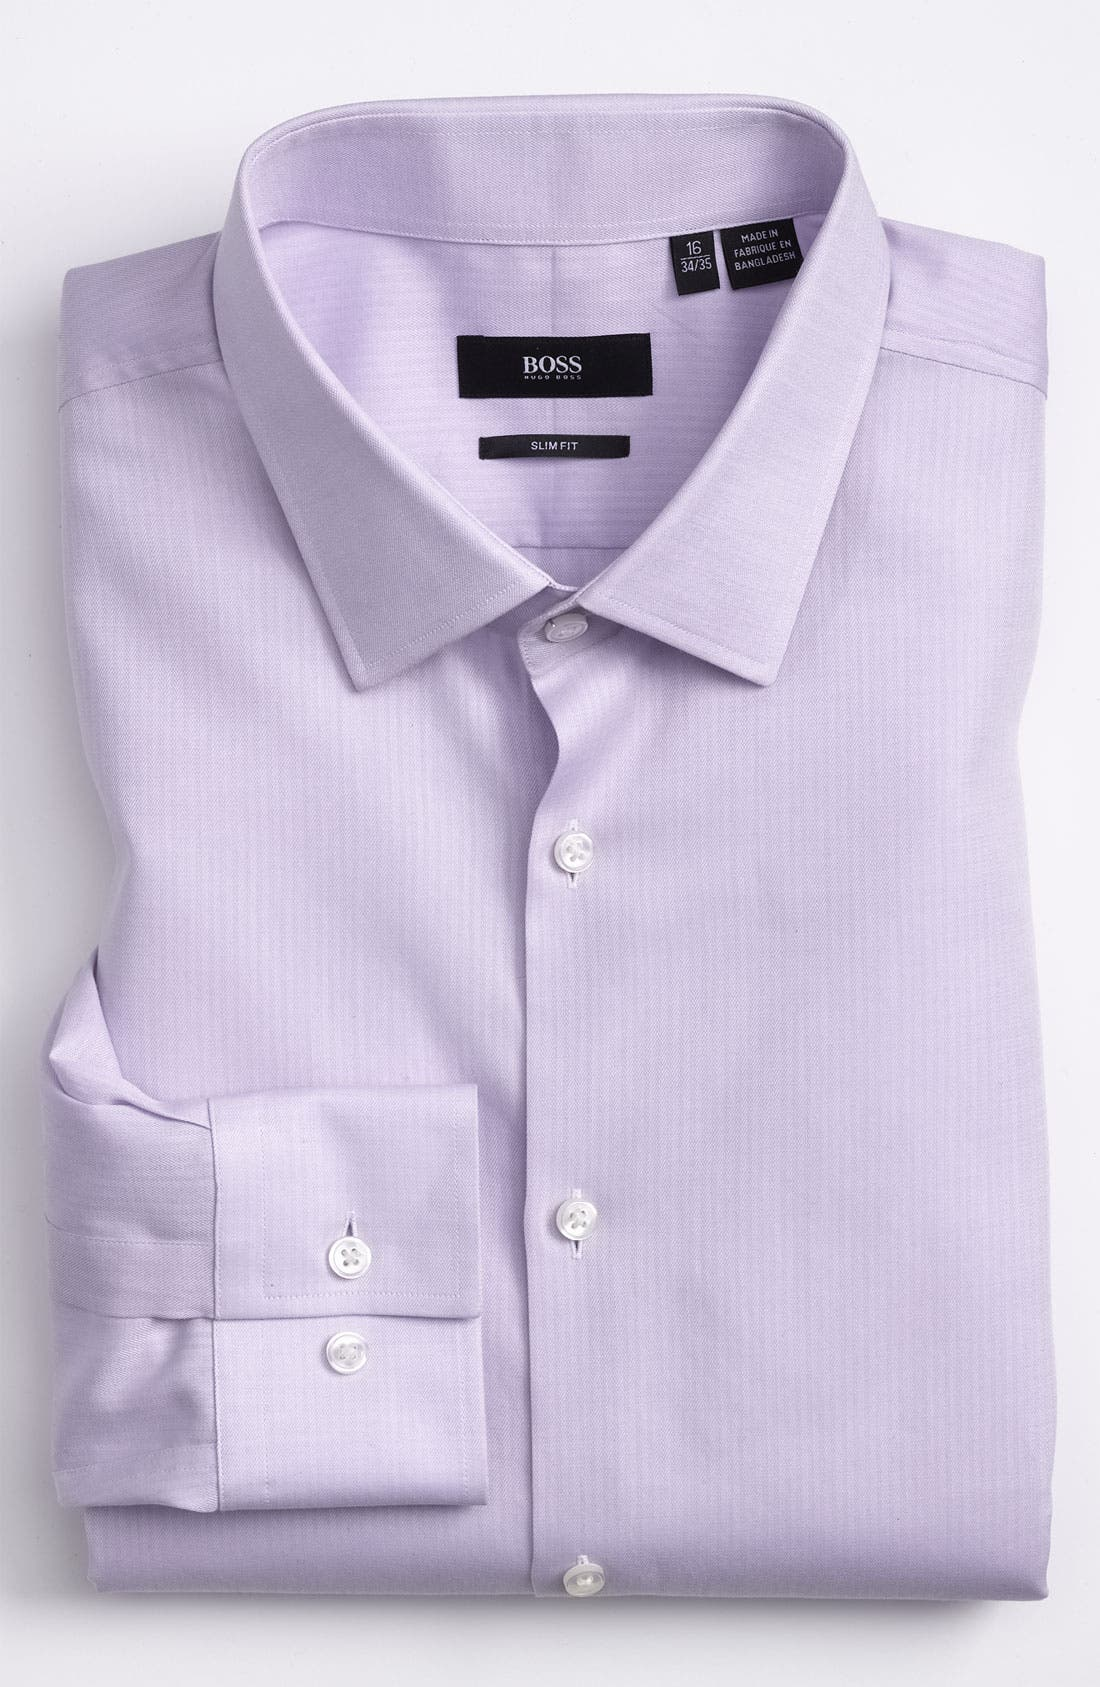 Main Image - BOSS 'Jenno' Slim Fit Herringbone Dress Shirt